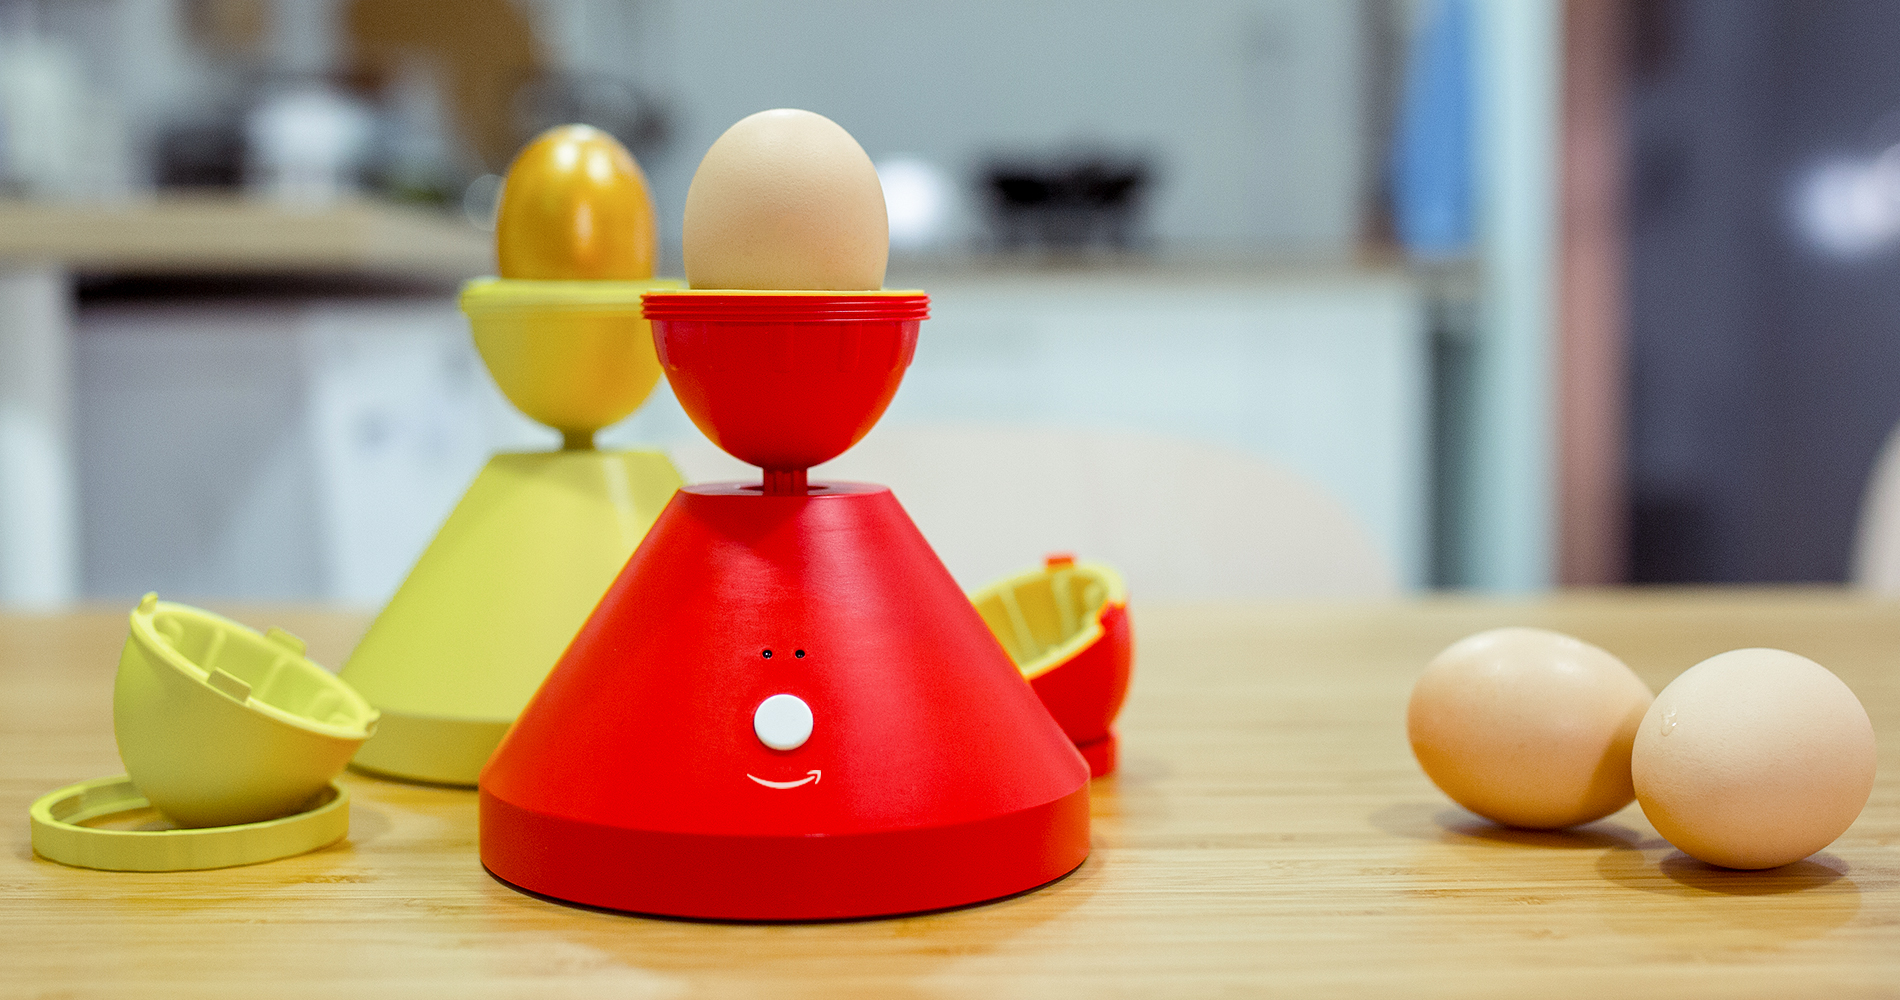 EC: This Gadget Lets You Scramble Eggs Inside Their Shell